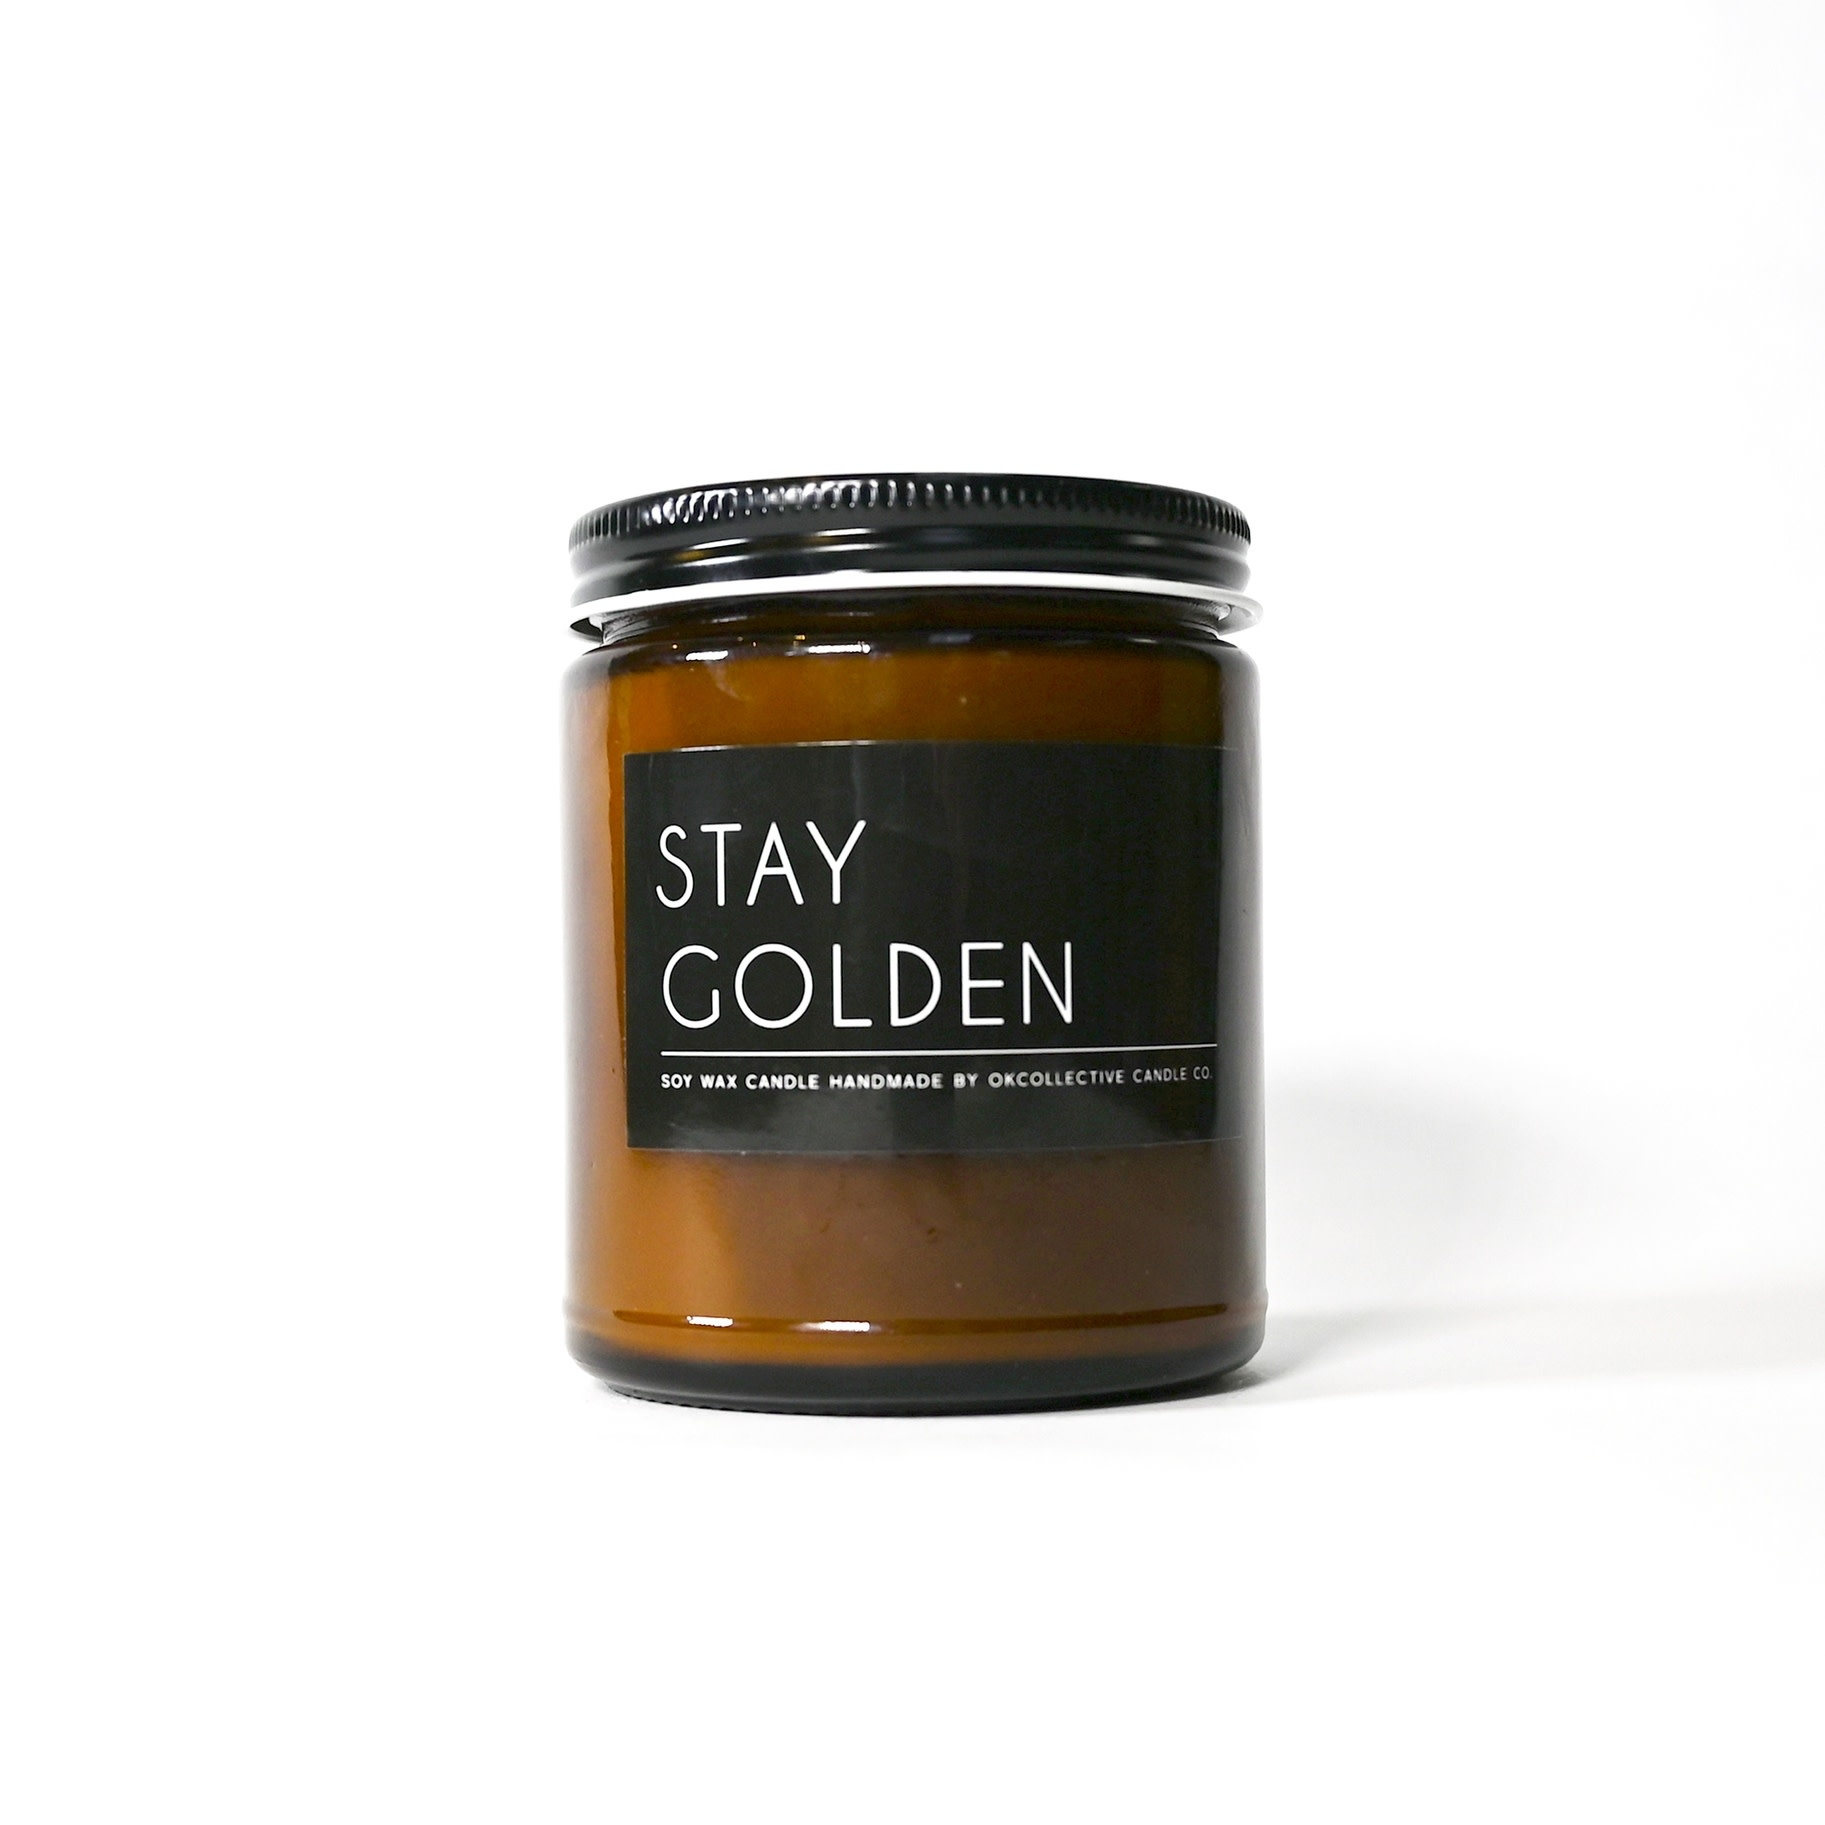 Stay Golden 8oz Candle